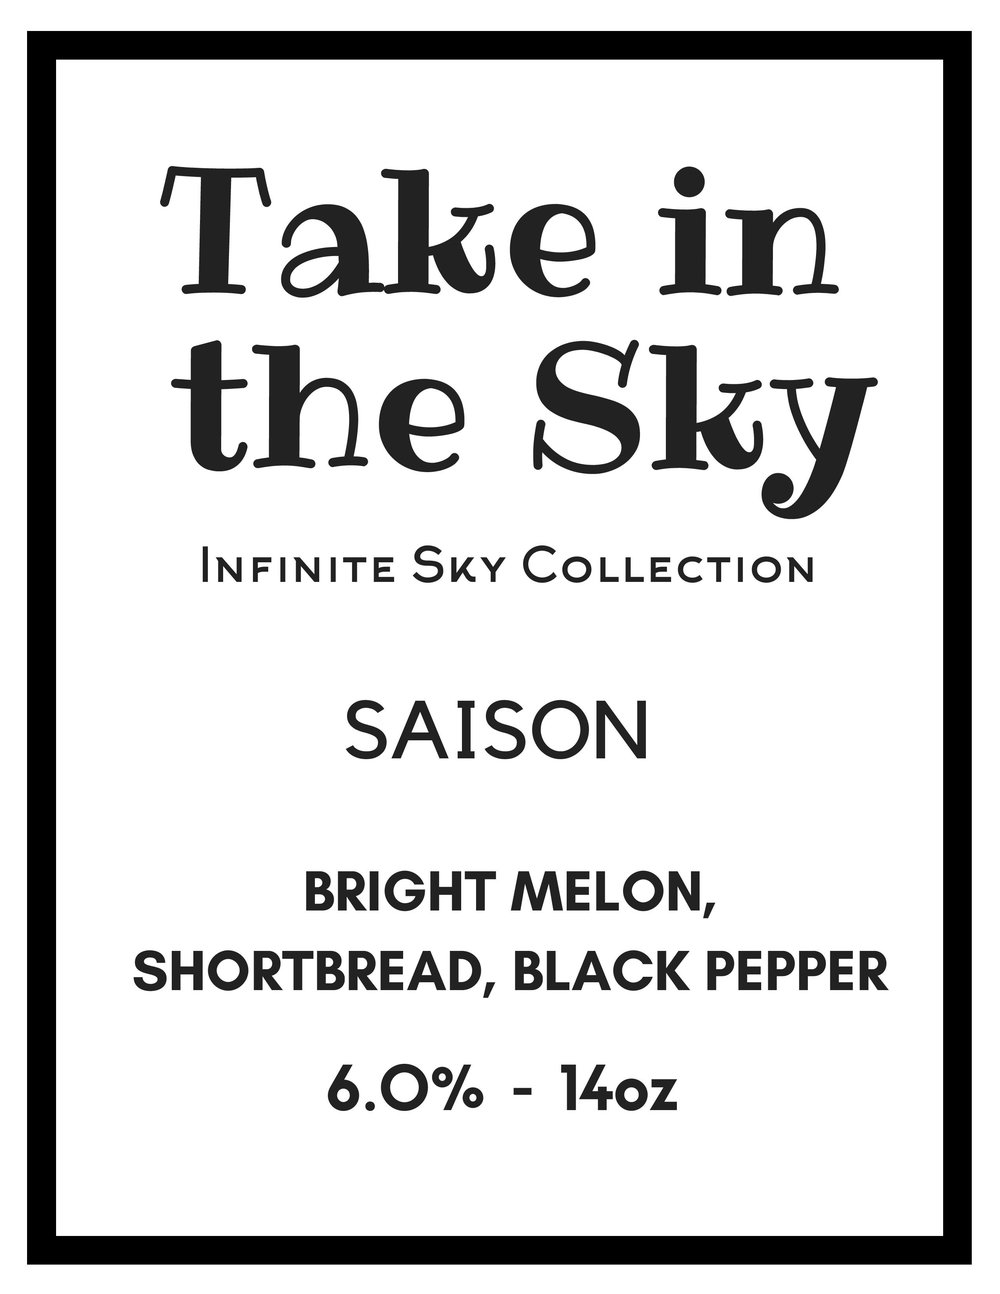 We brewed this beer with a blend of Belgian and French Saison yeast and let it free-rise. Made with all VA-grown Pilsner malt, Eastern Shore MD raw wheat and hopped exclusively with Goldings, this beer is crisp dry and refreshing.